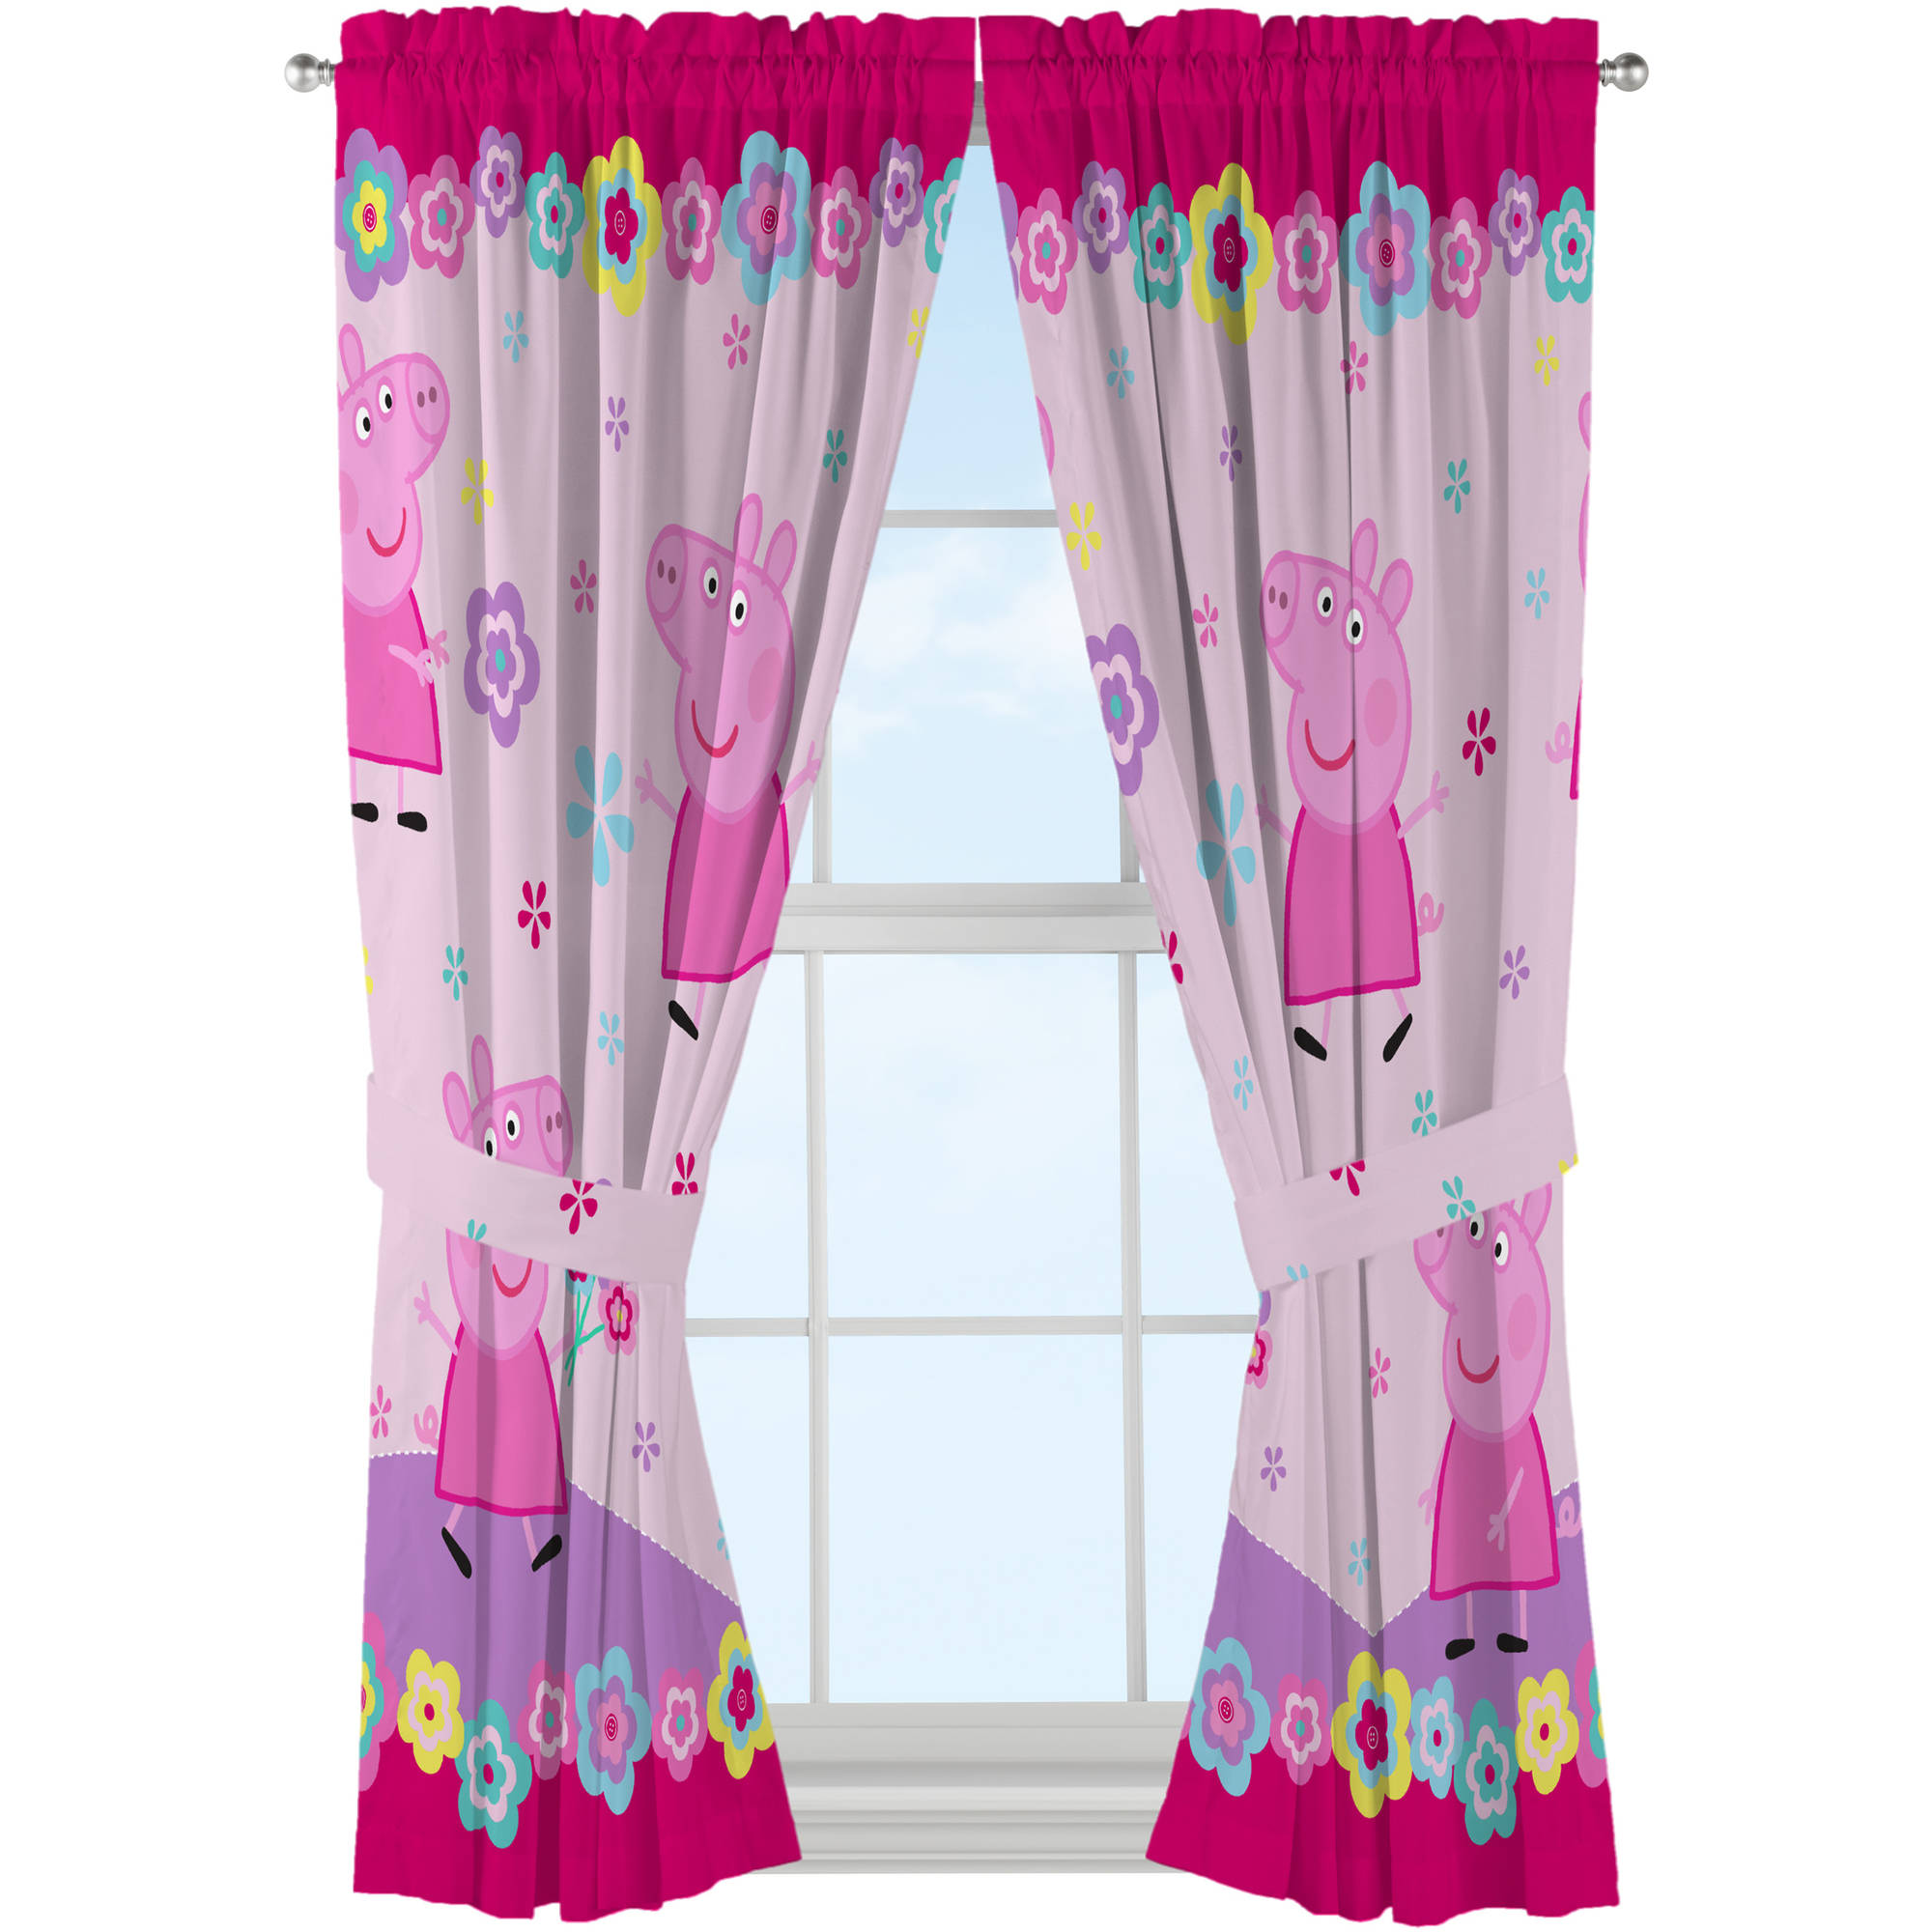 Peppa Pig 'Peppa's Flower Patch' Curtain Panel, Set of 2